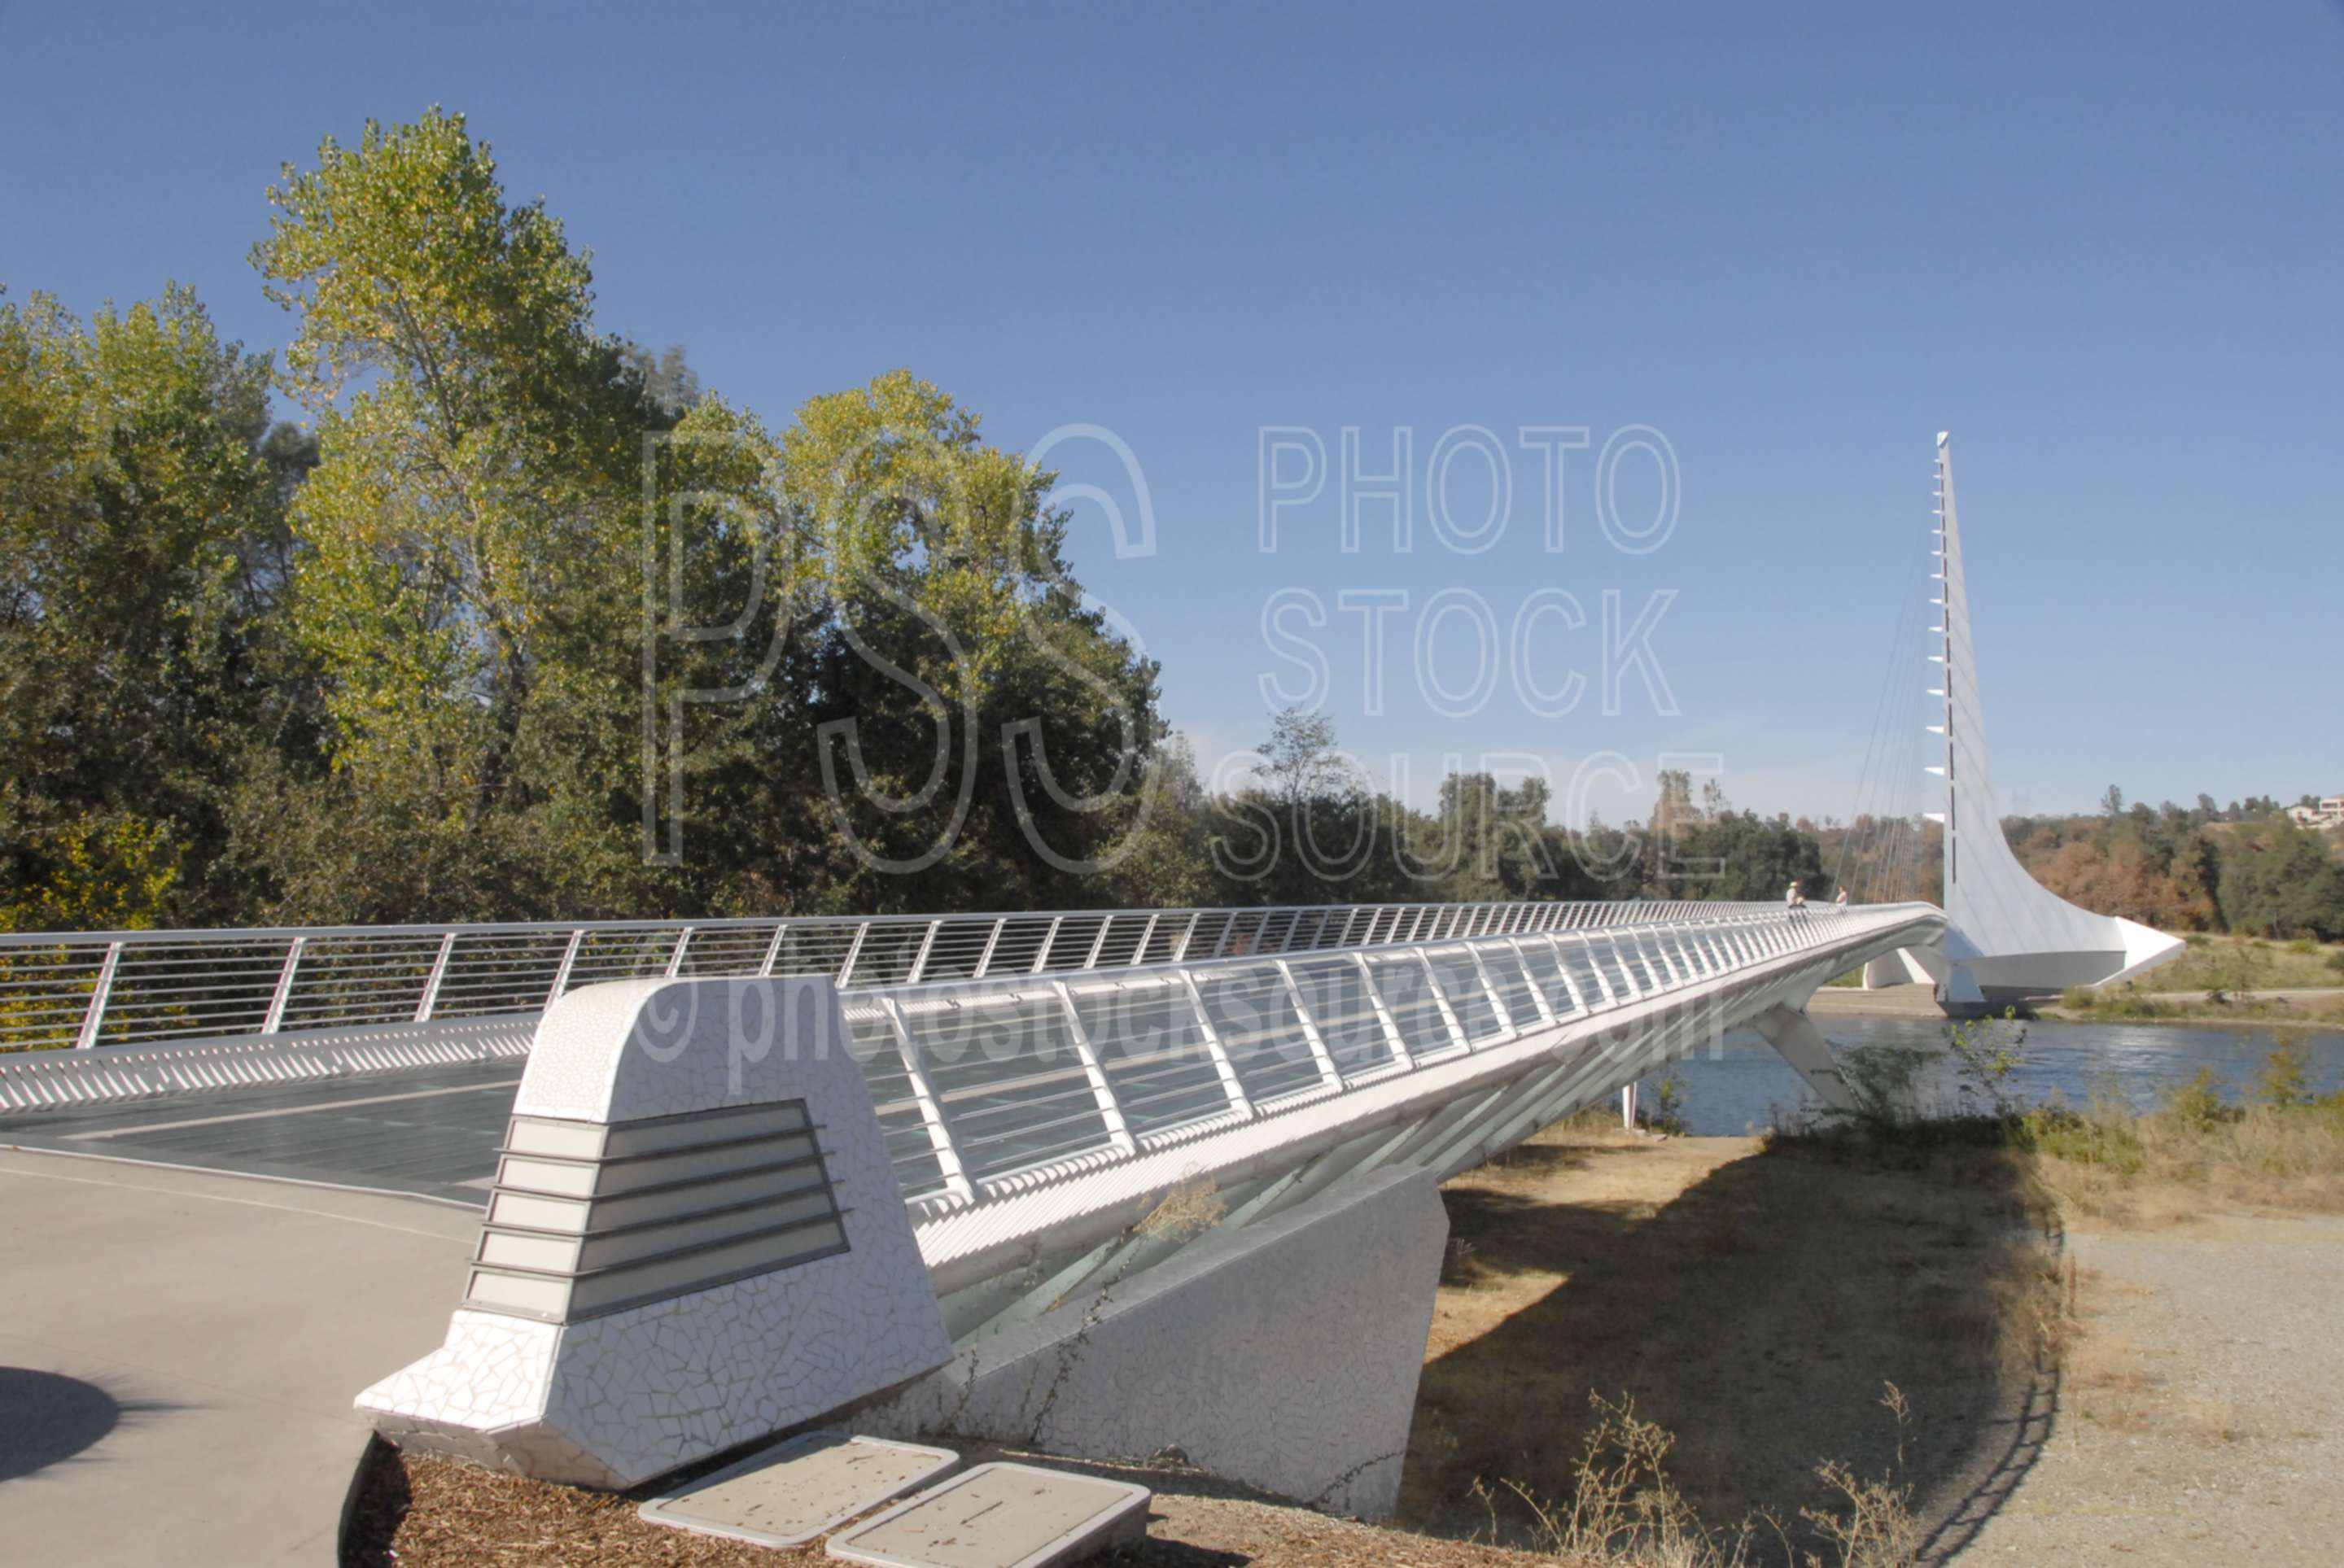 Sundial Bridge,bridge,scupture,river,sacramento river,santiago calatrava,art,architecture,bridges